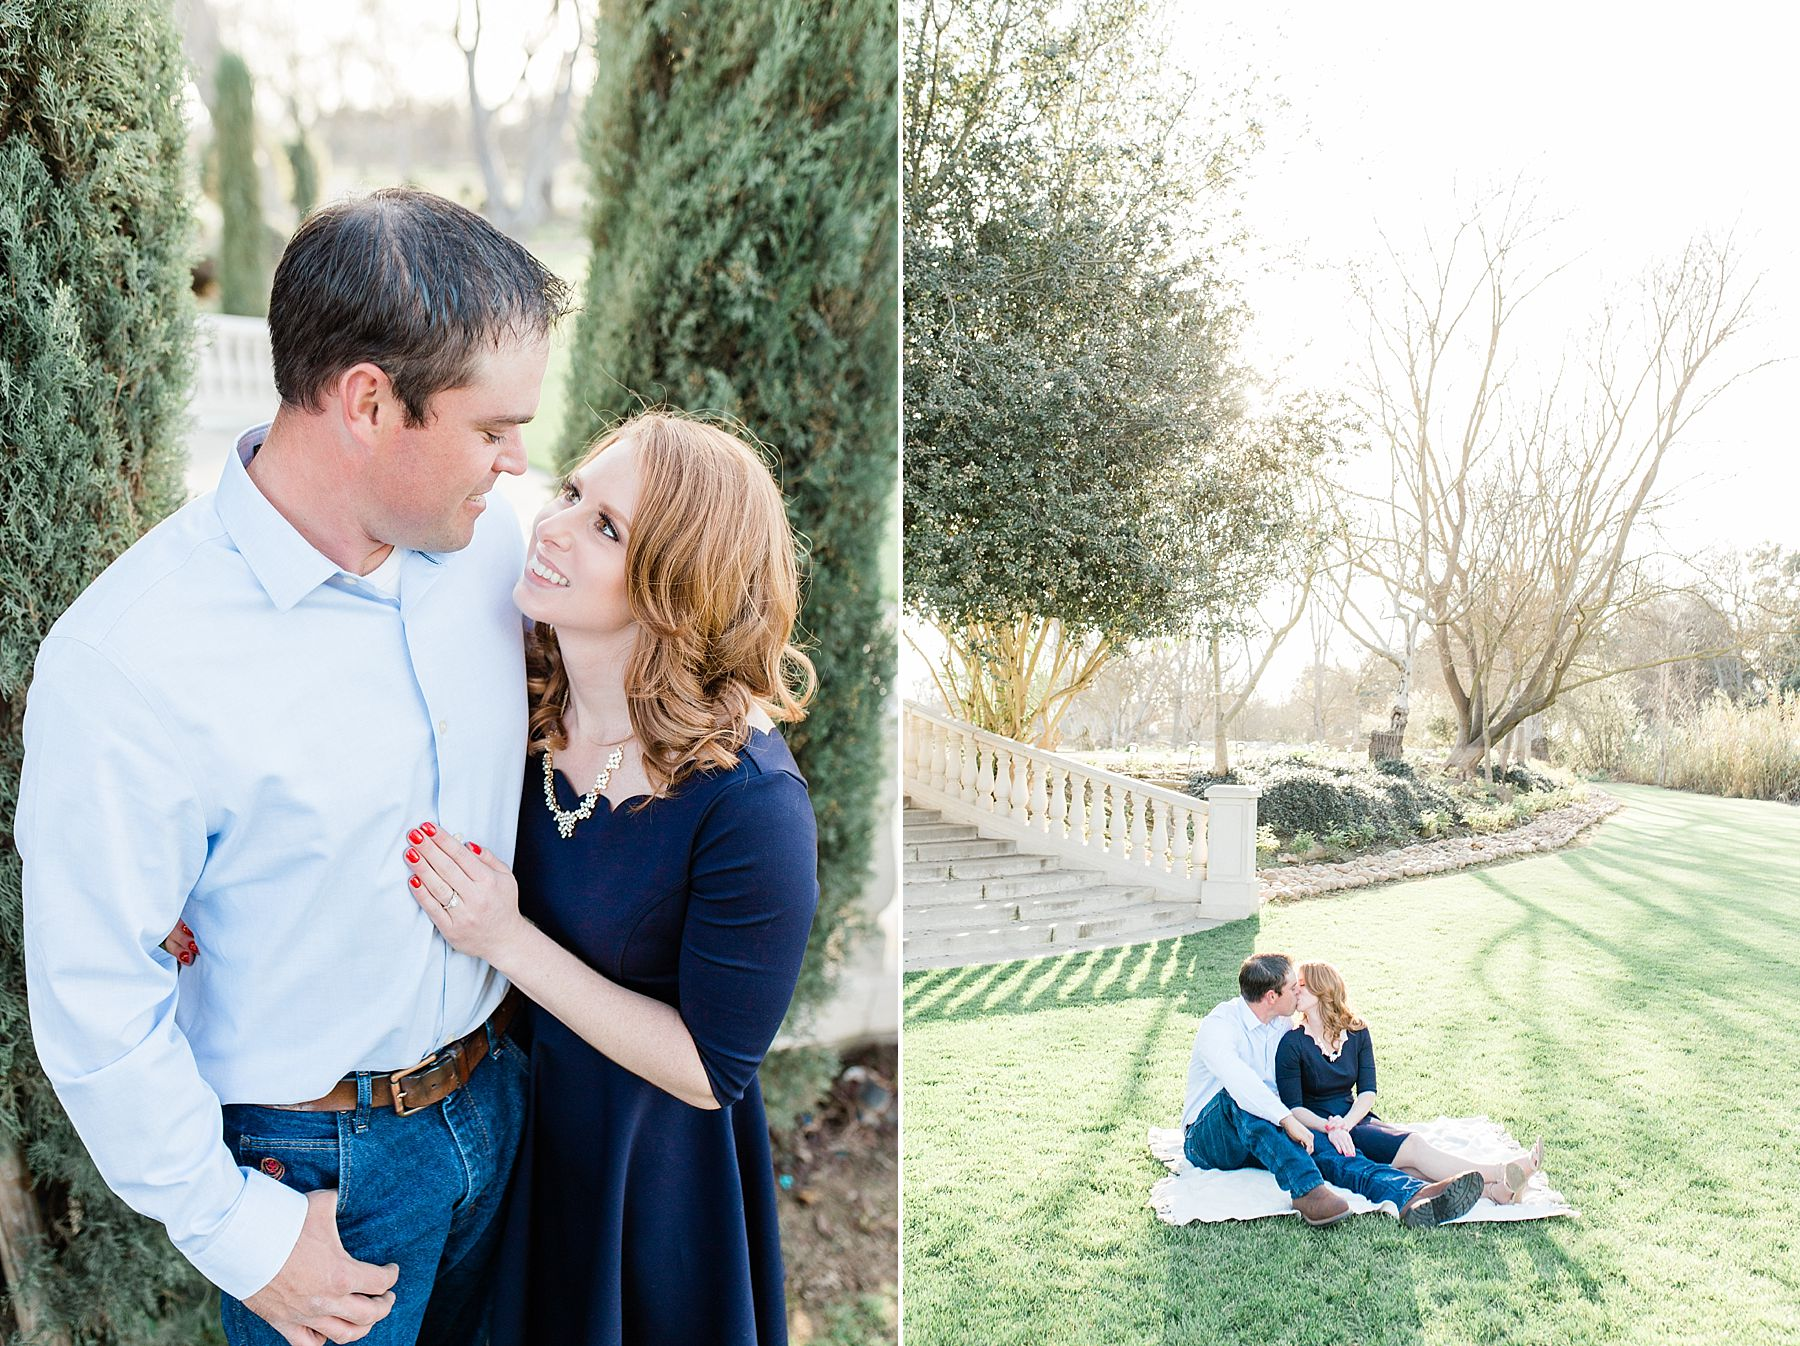 Viaggio Winery Engagement Session - Liz and TJ - Lodi Winery Wedding Photographer_0002.jpg